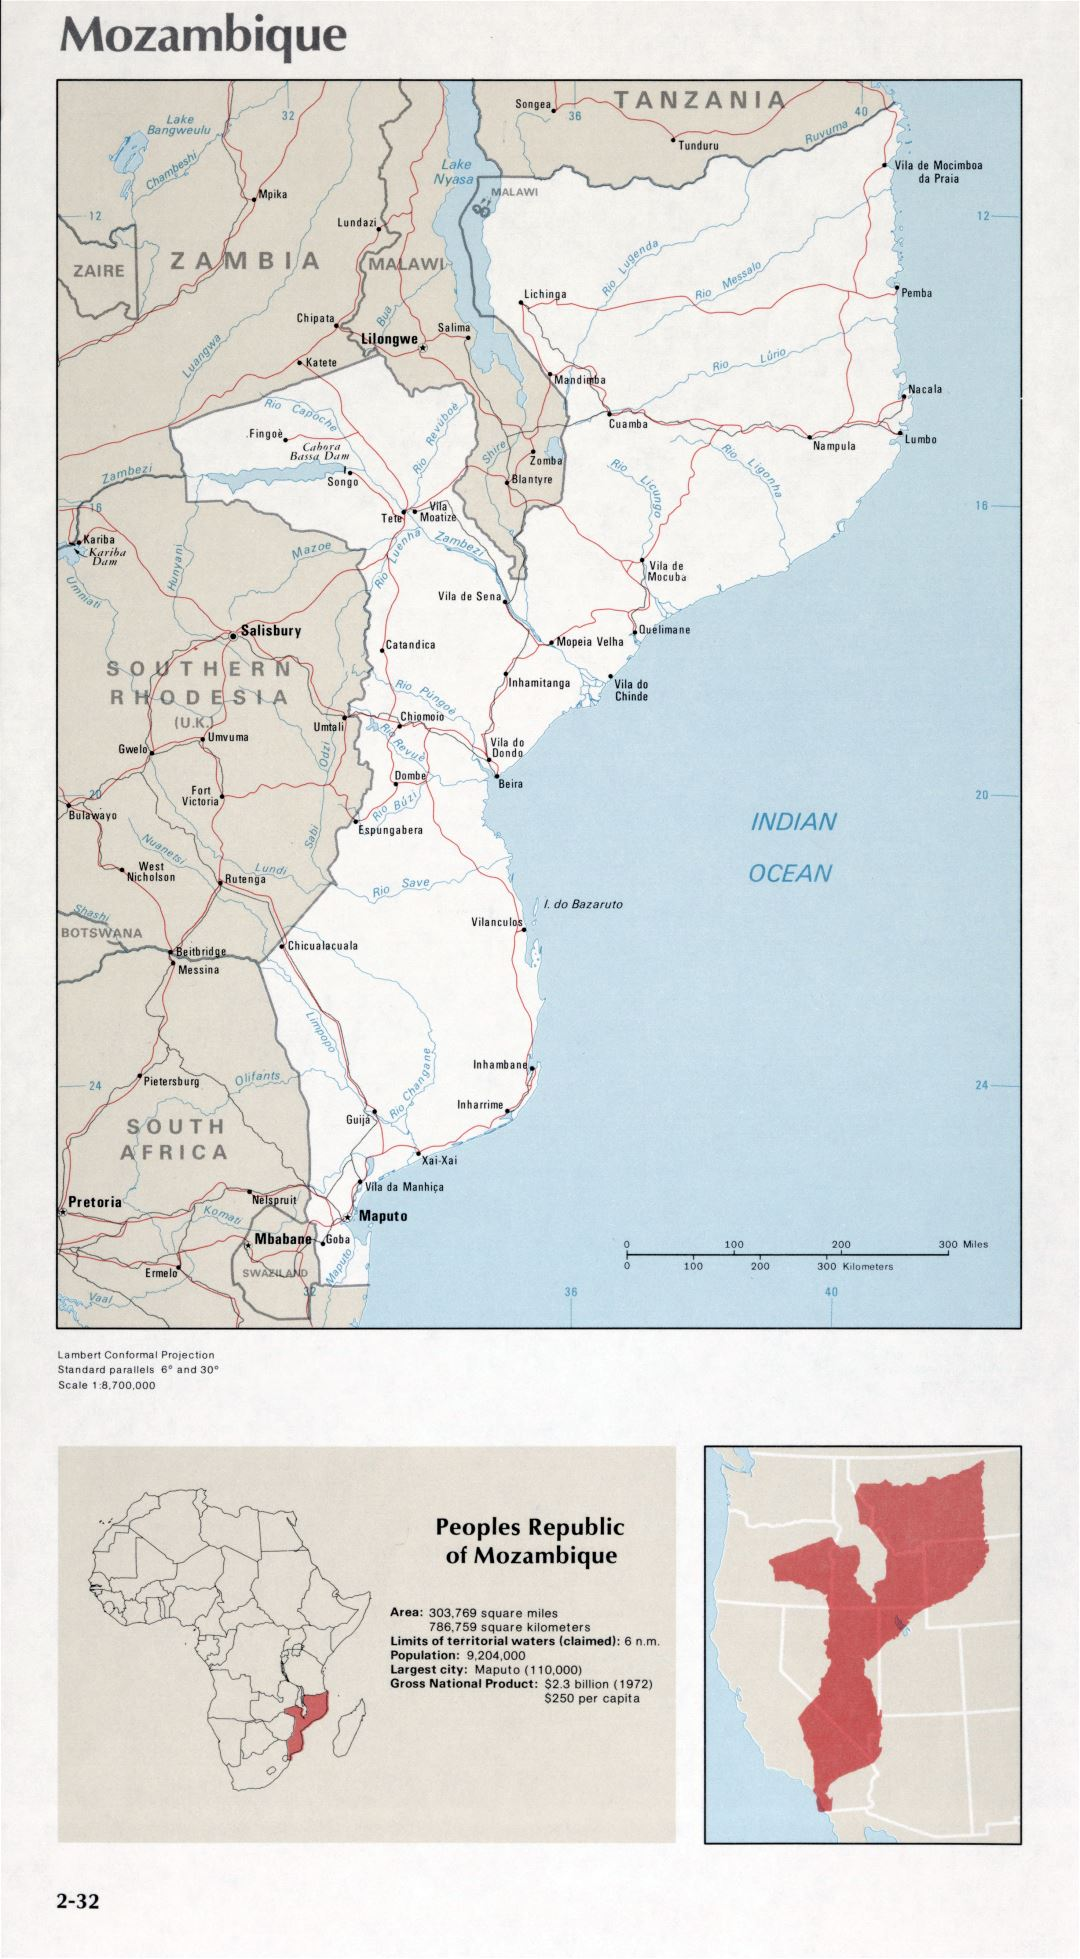 Map of Mozambique (2-32)